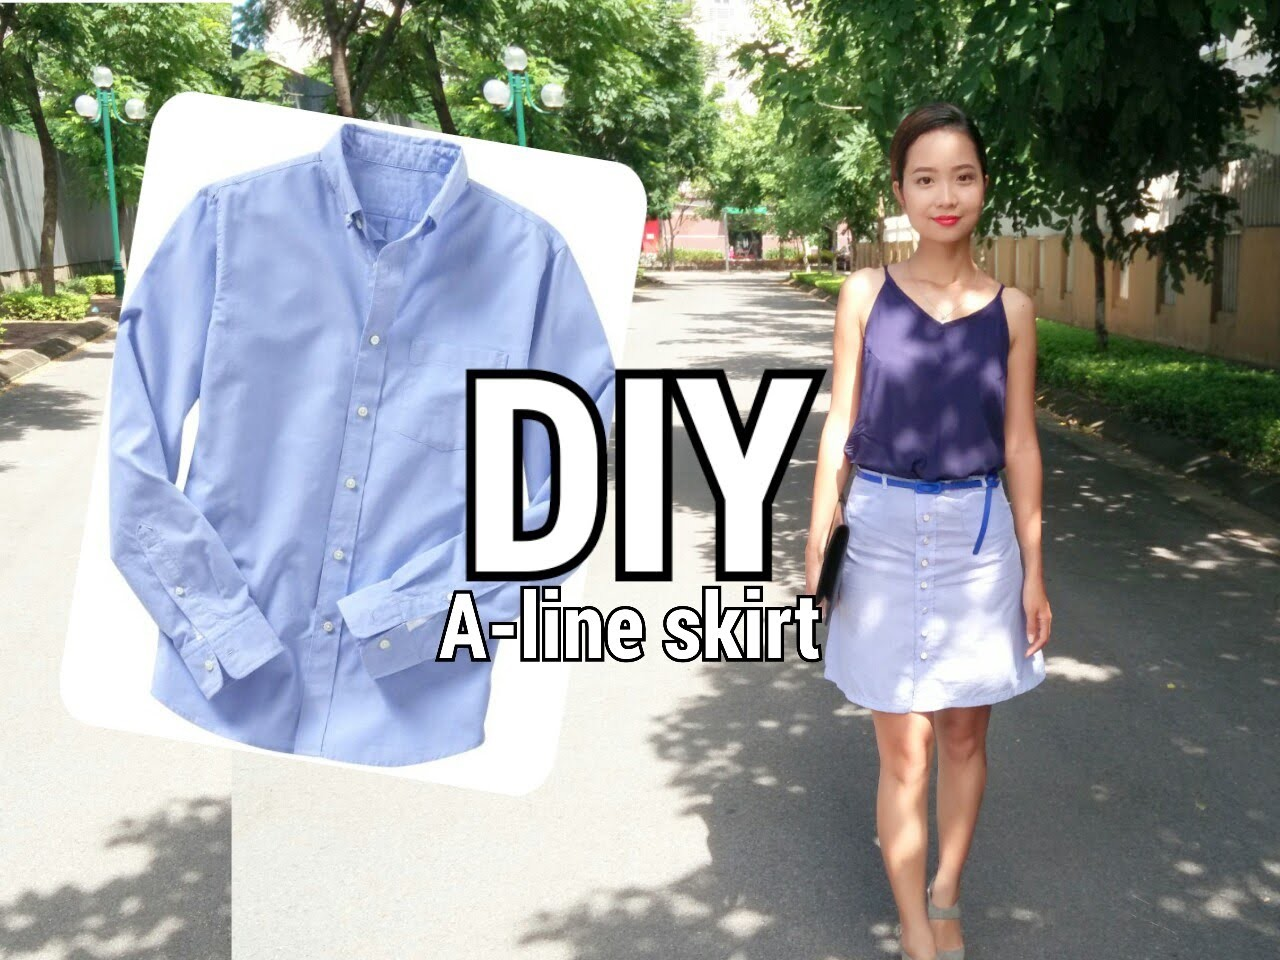 DIY From His to Hers| Make Button Front A-line Skirt From Man's Shirt